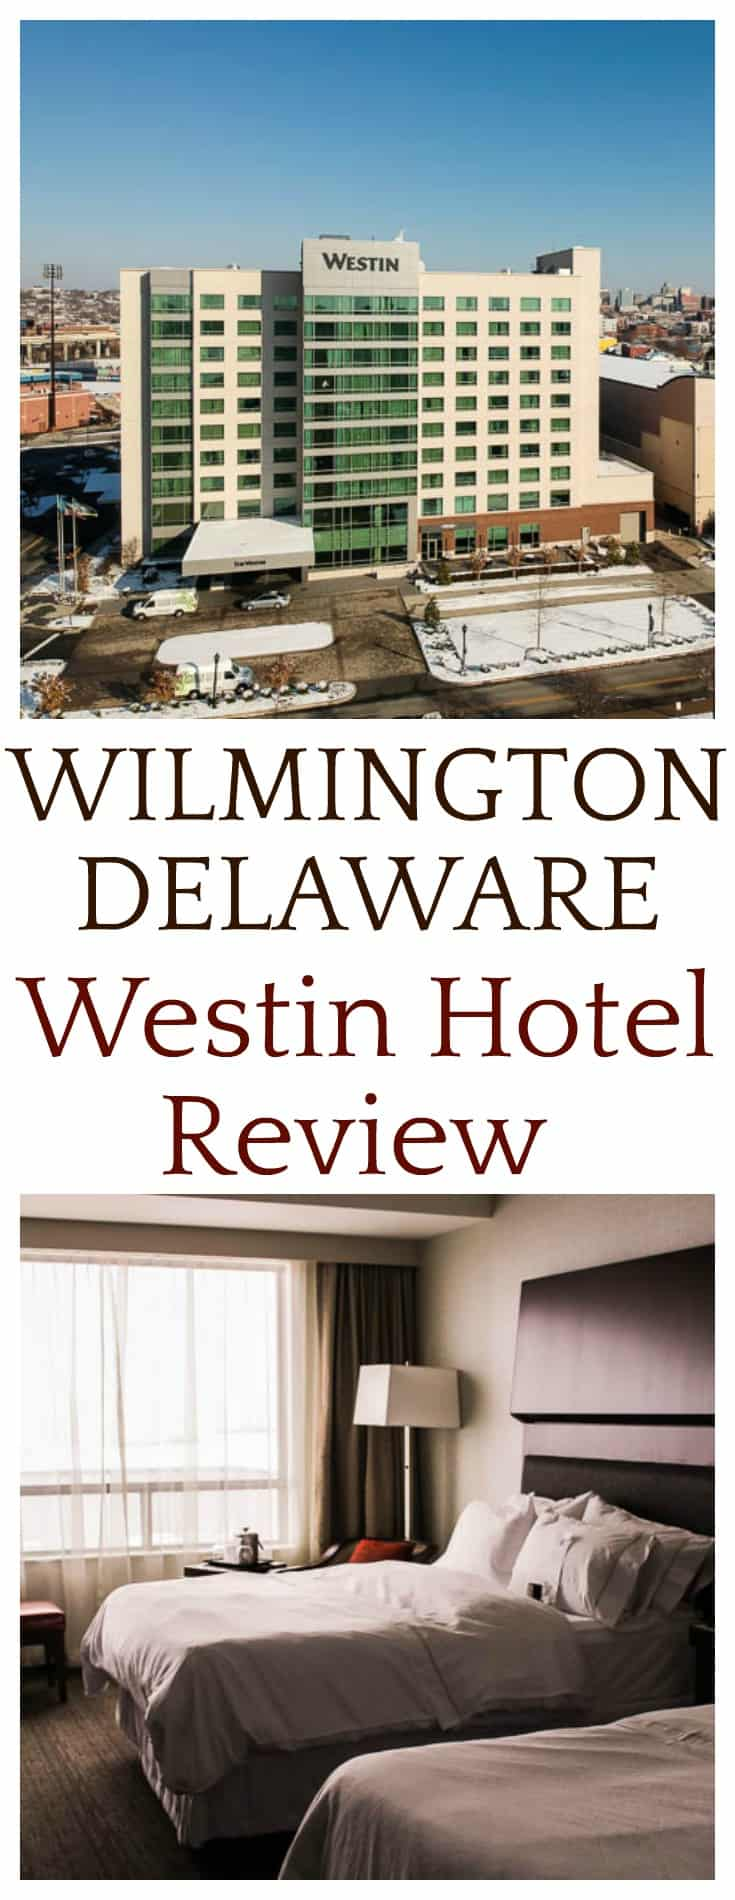 This Wilmington Westin Hotel Review is based off of my personal experience staying there in December 2017. | #westin #westinhotelreview #westinhotel #hotels #hotelreview #travel #delaware #wilmington